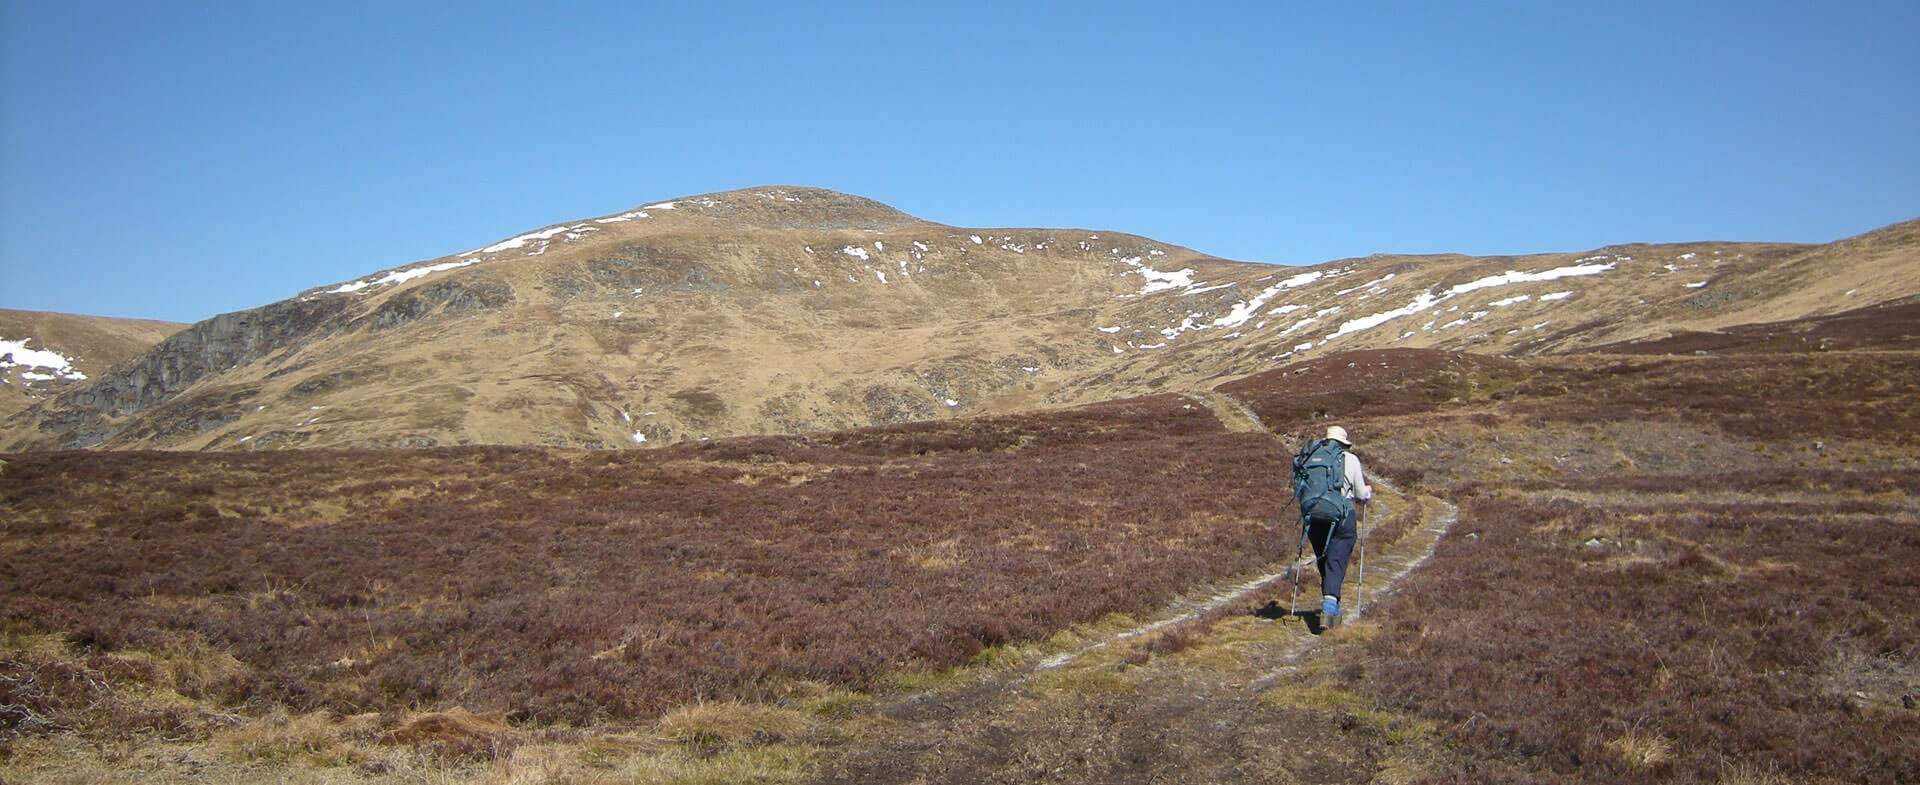 near Prosen hostel in Angus South Cairngorms